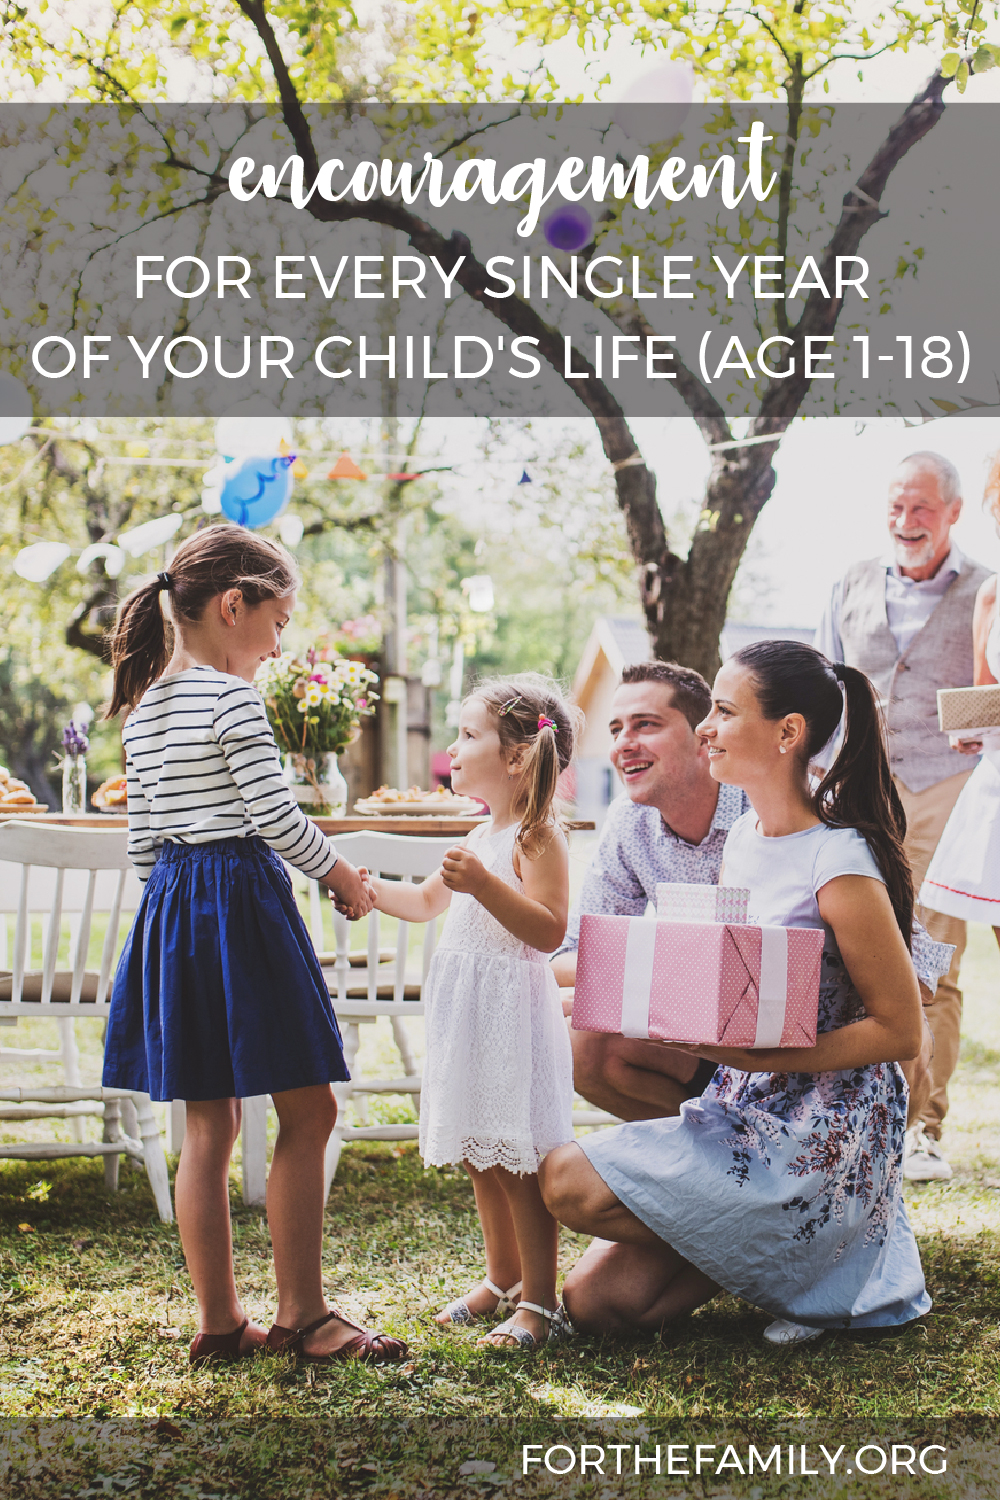 Every single year of your child's life is a wonder! Give thanks in every season, with our guide to what to expect in yearly development and reminders for you to trust God in each stage.